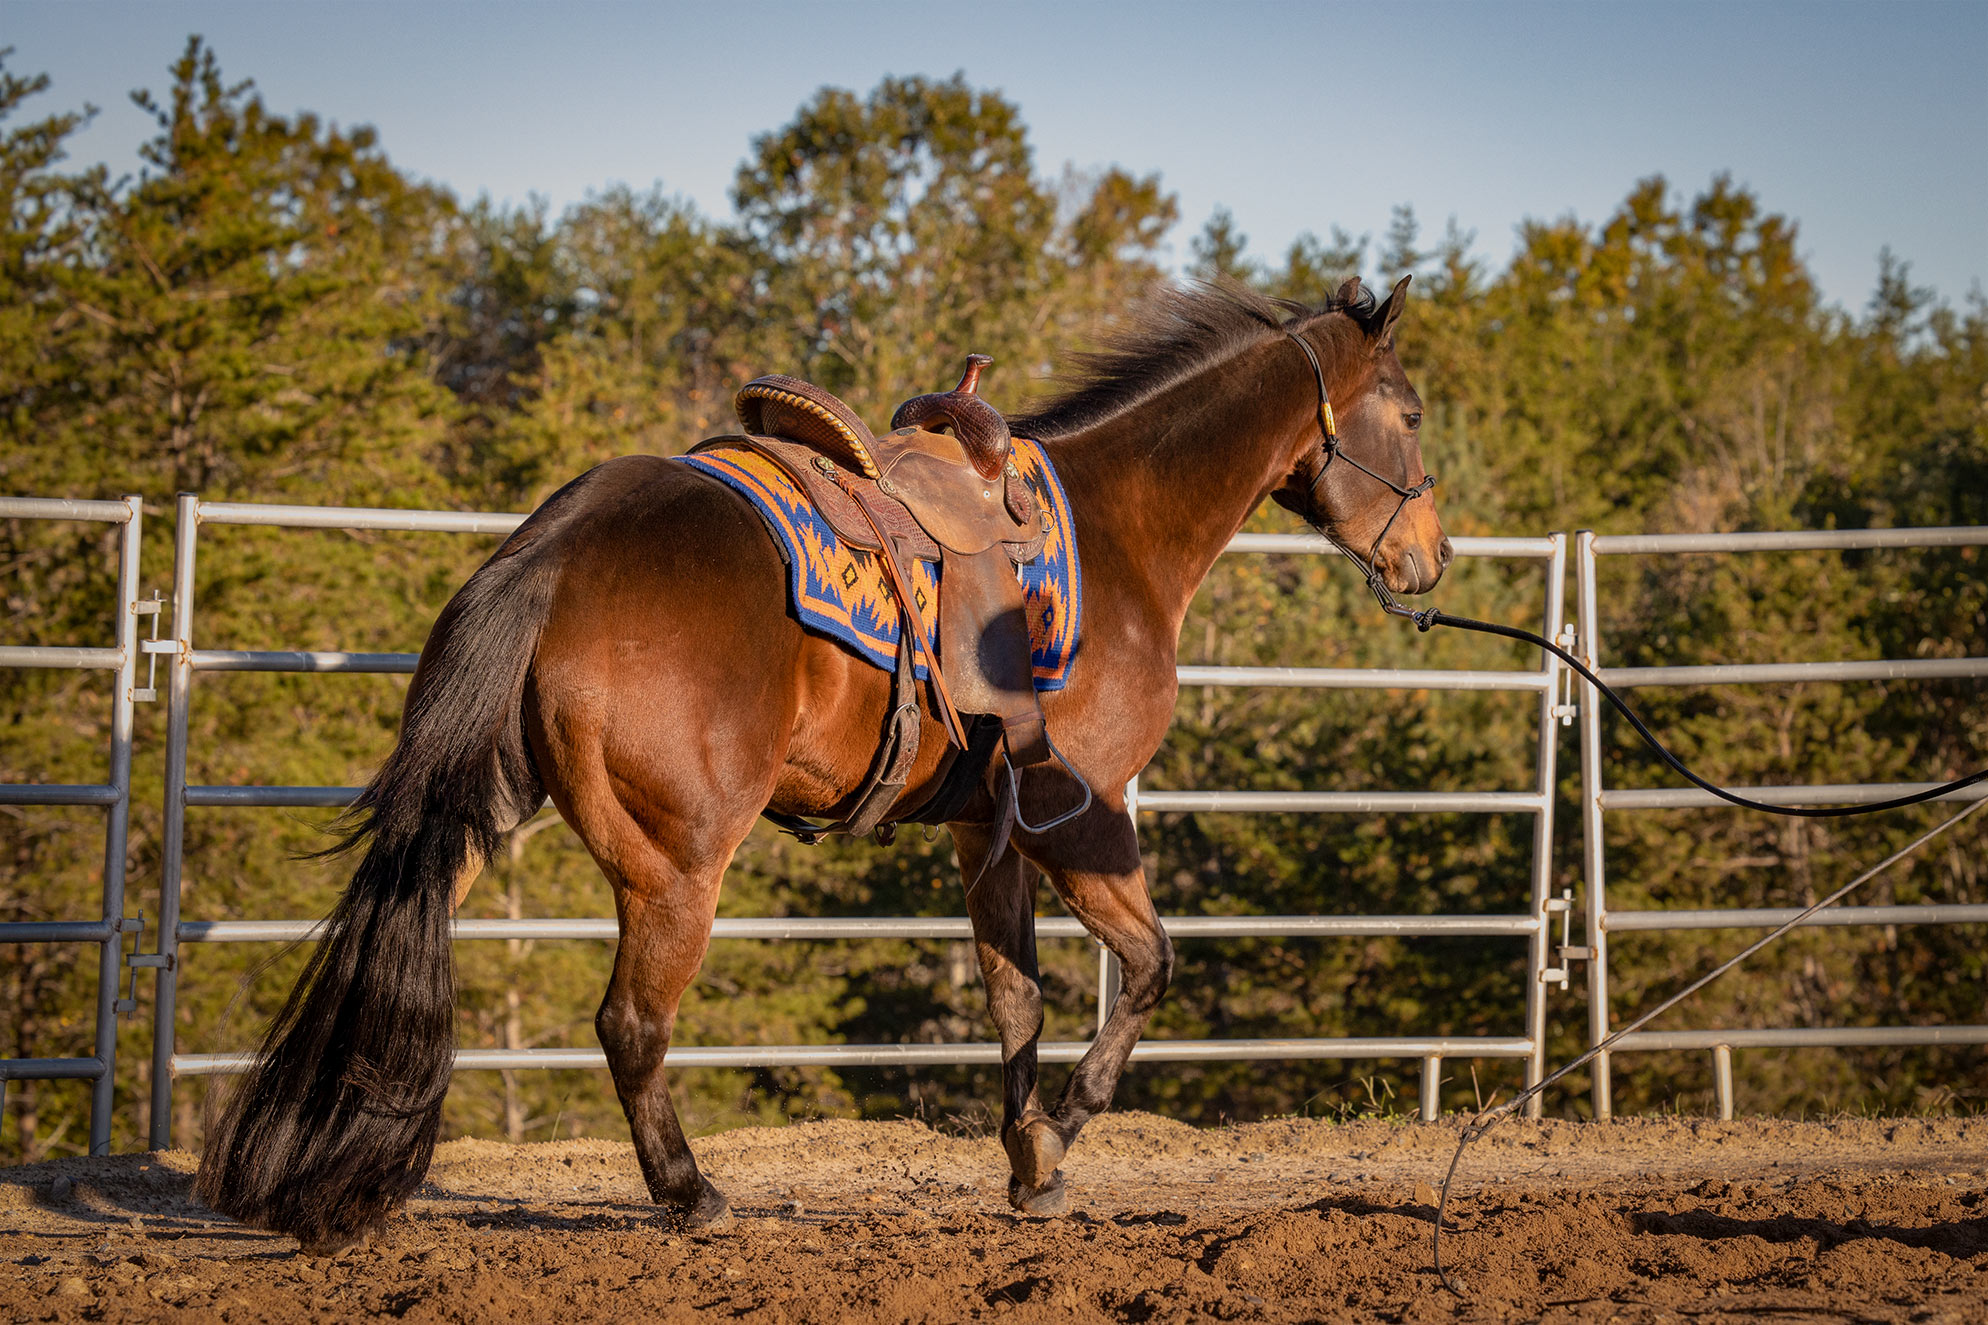 017-Ace-Luxury-Trail-Horse-For-Sale